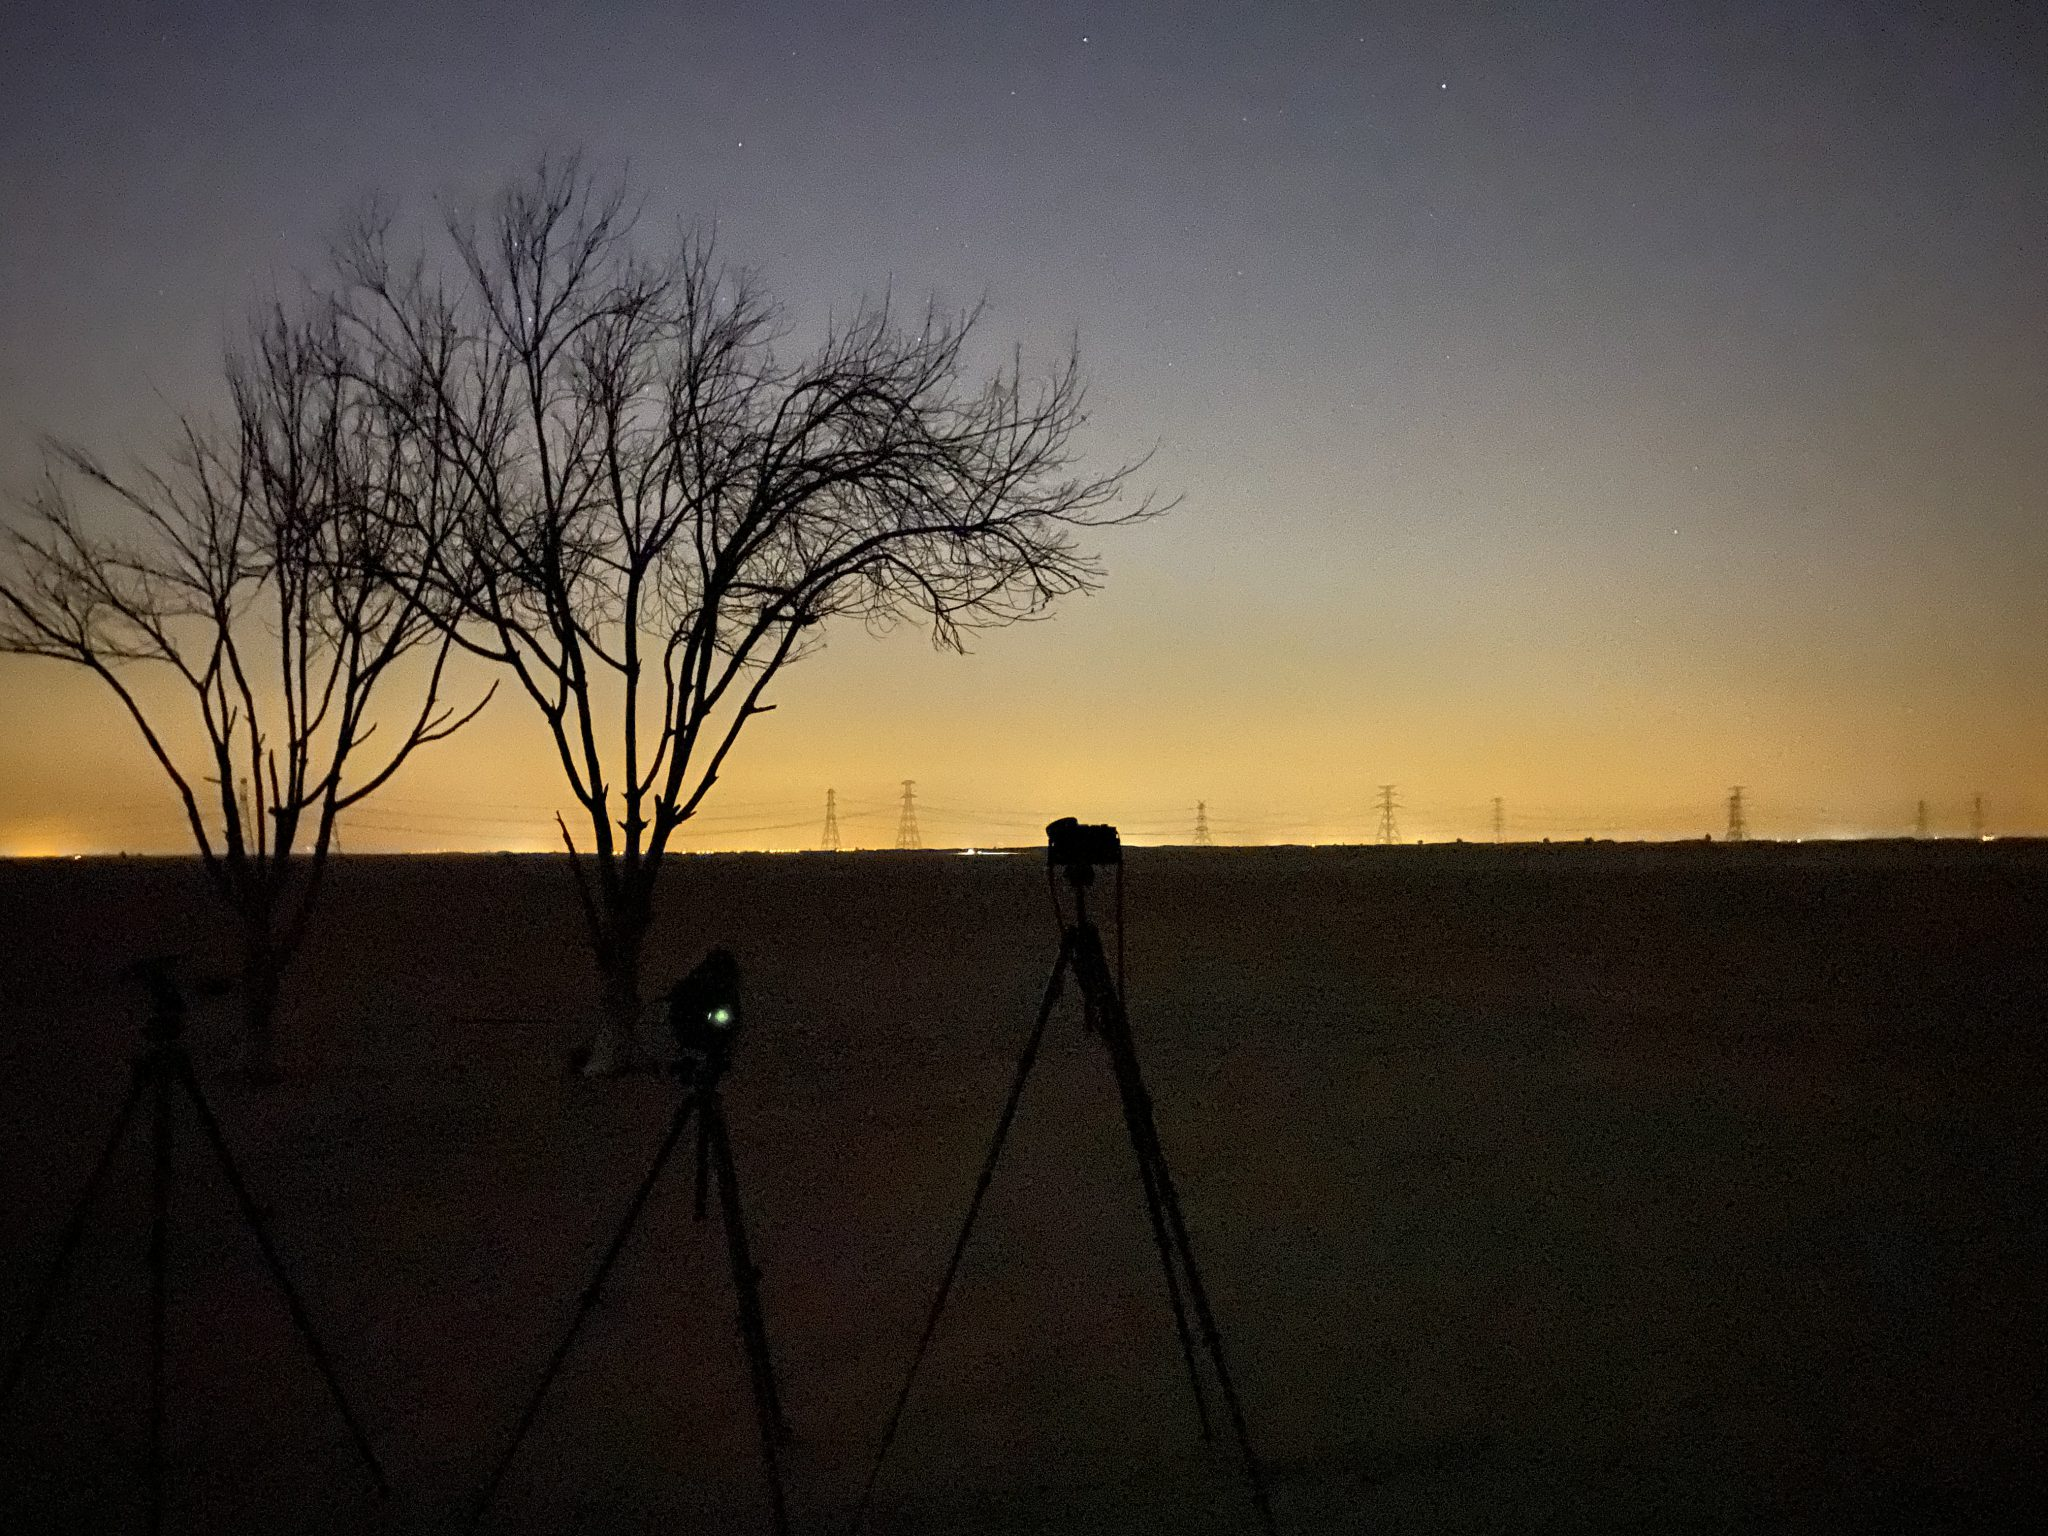 Photography equipment setup to capture star trails